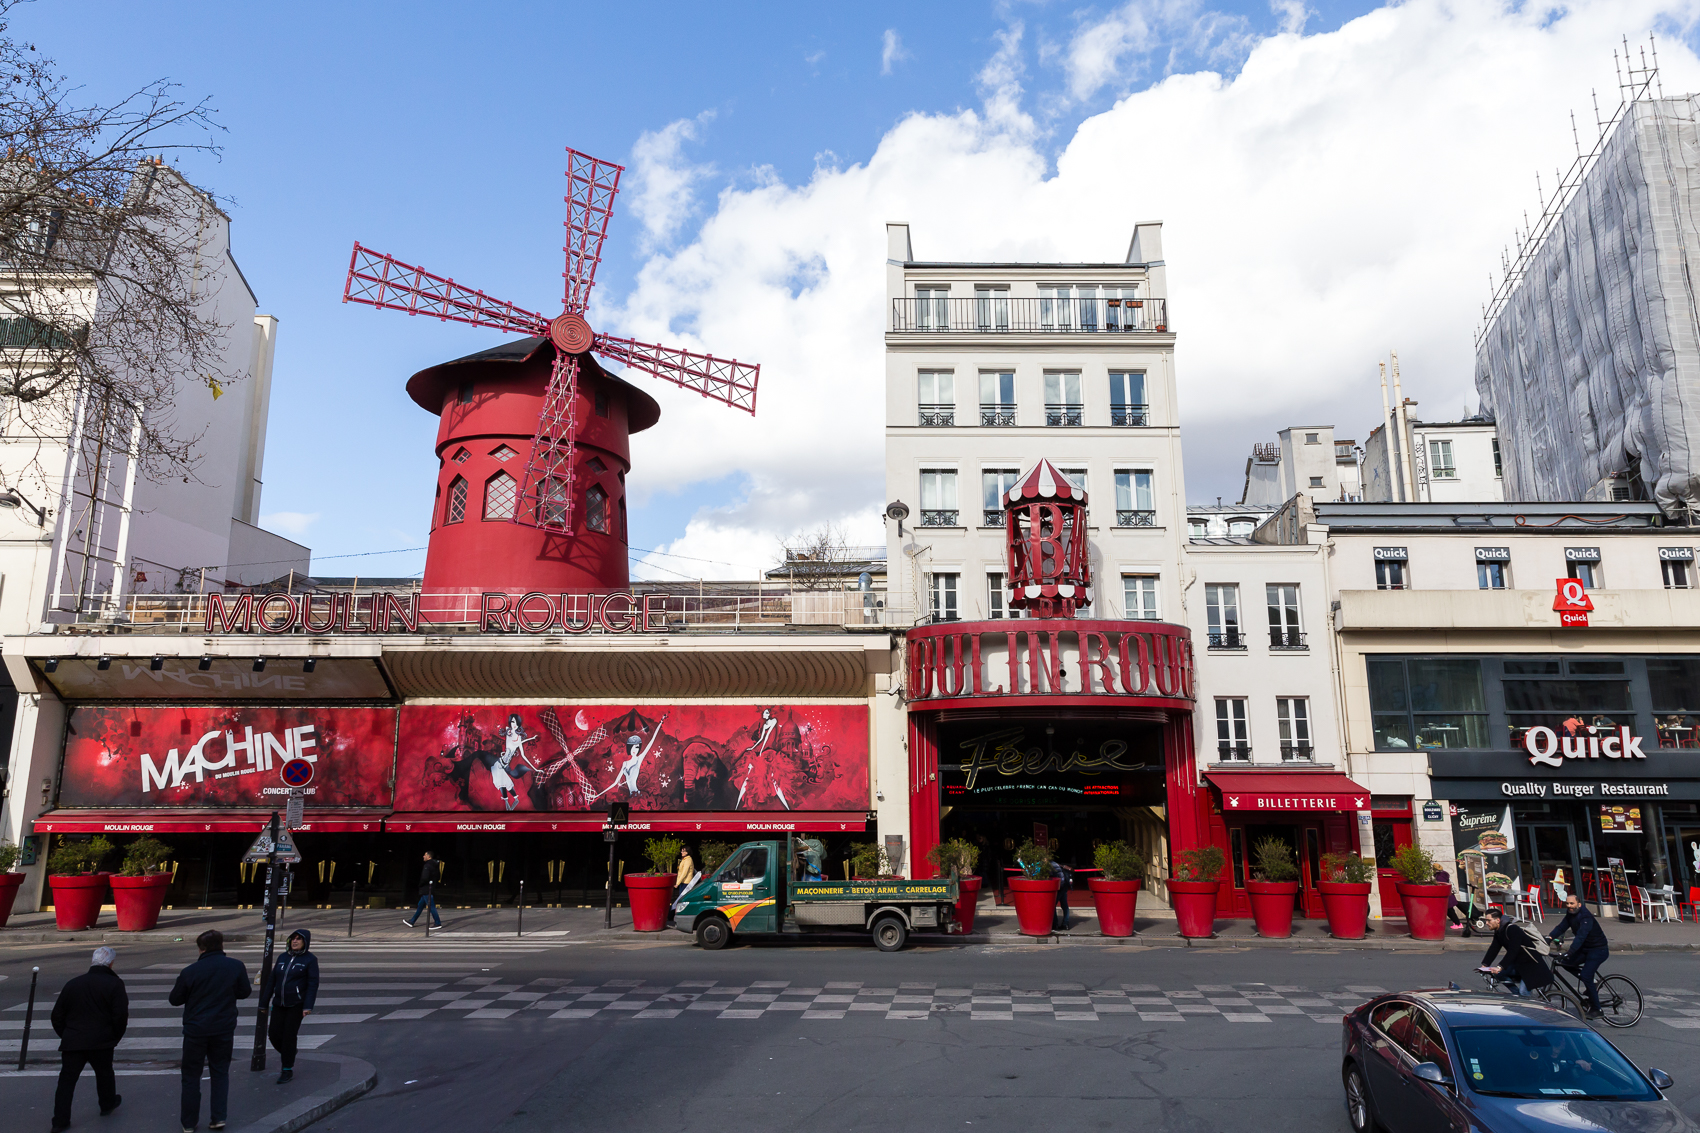 Moulin Rouge…. some interesting questions coming up through this district from two impressionable girls…